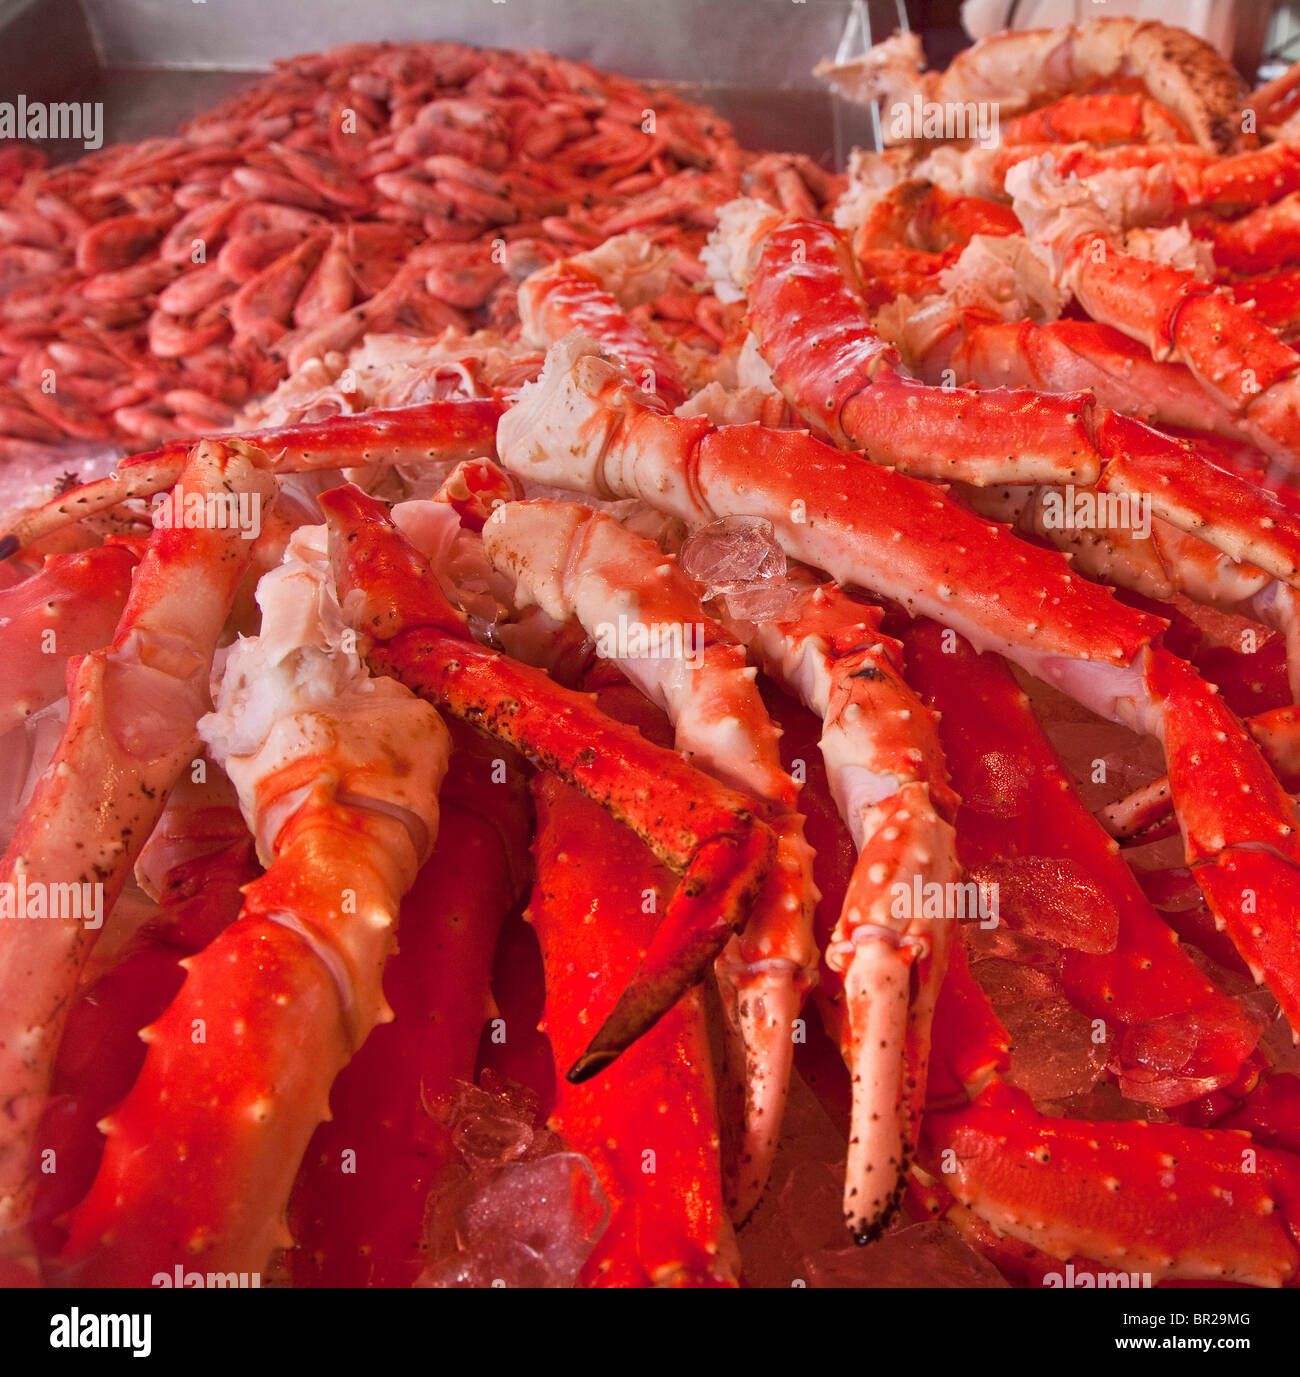 Spider crabs on sale at Bergen fish, sea food market, Norway - Stock Image